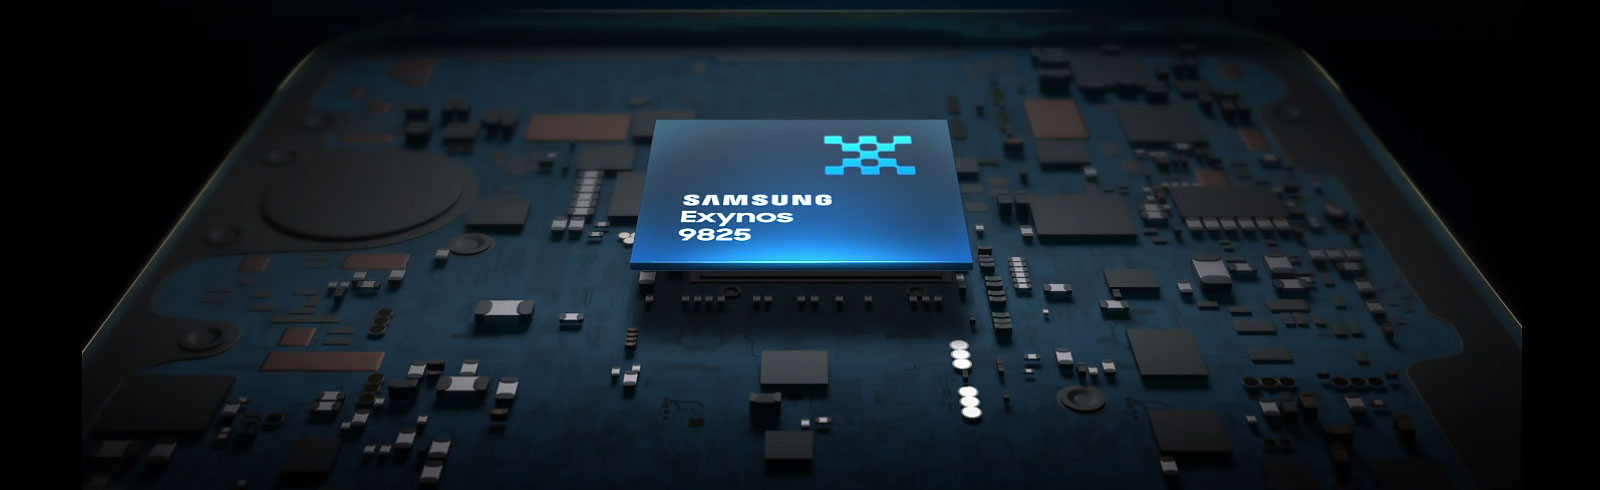 Samsung Exynos 9825 goes official